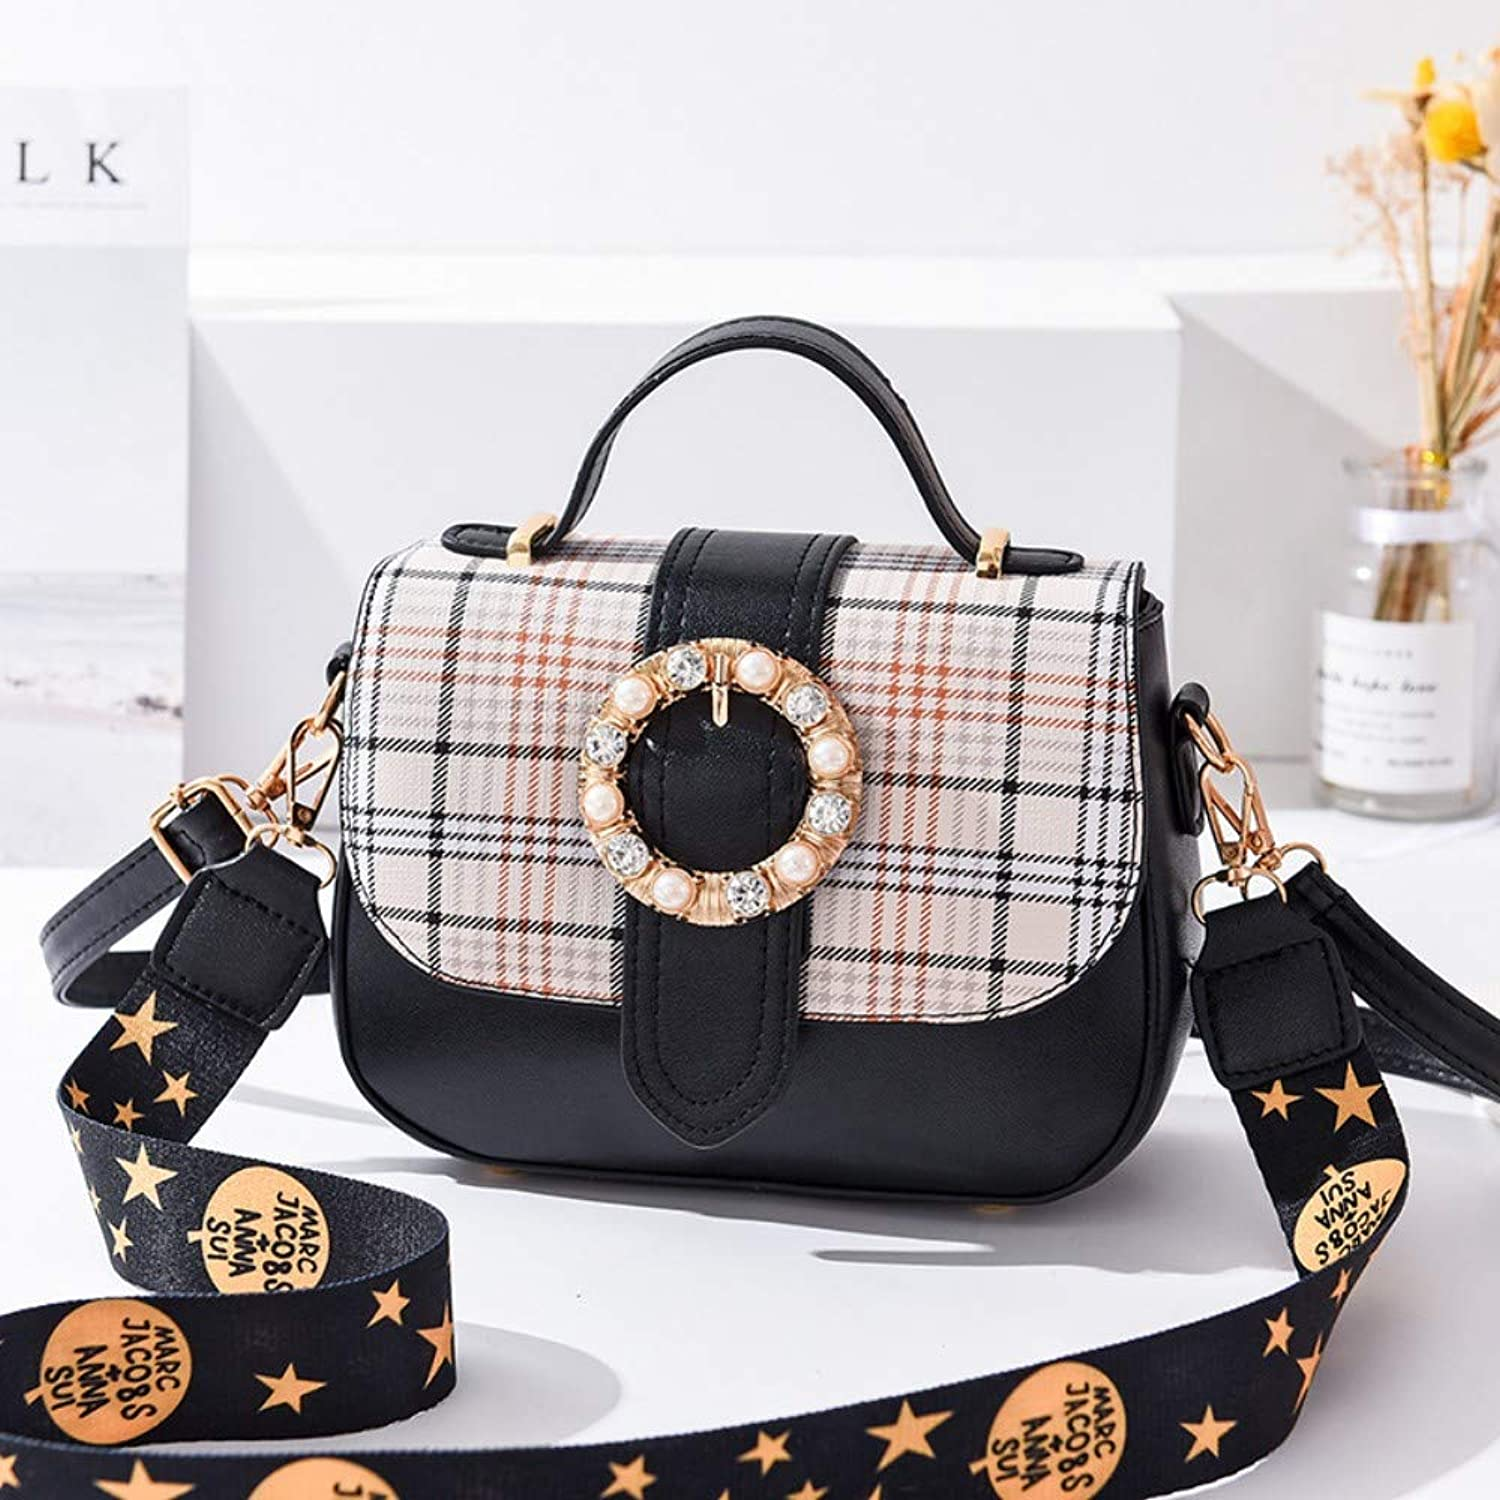 Women Shoulder Bag,Ladies Handbags Crossbody Bag,Fashion Plaid Vintage Printing Wide Strap Messenger Bags,Female Classic Small Square Bag Balck